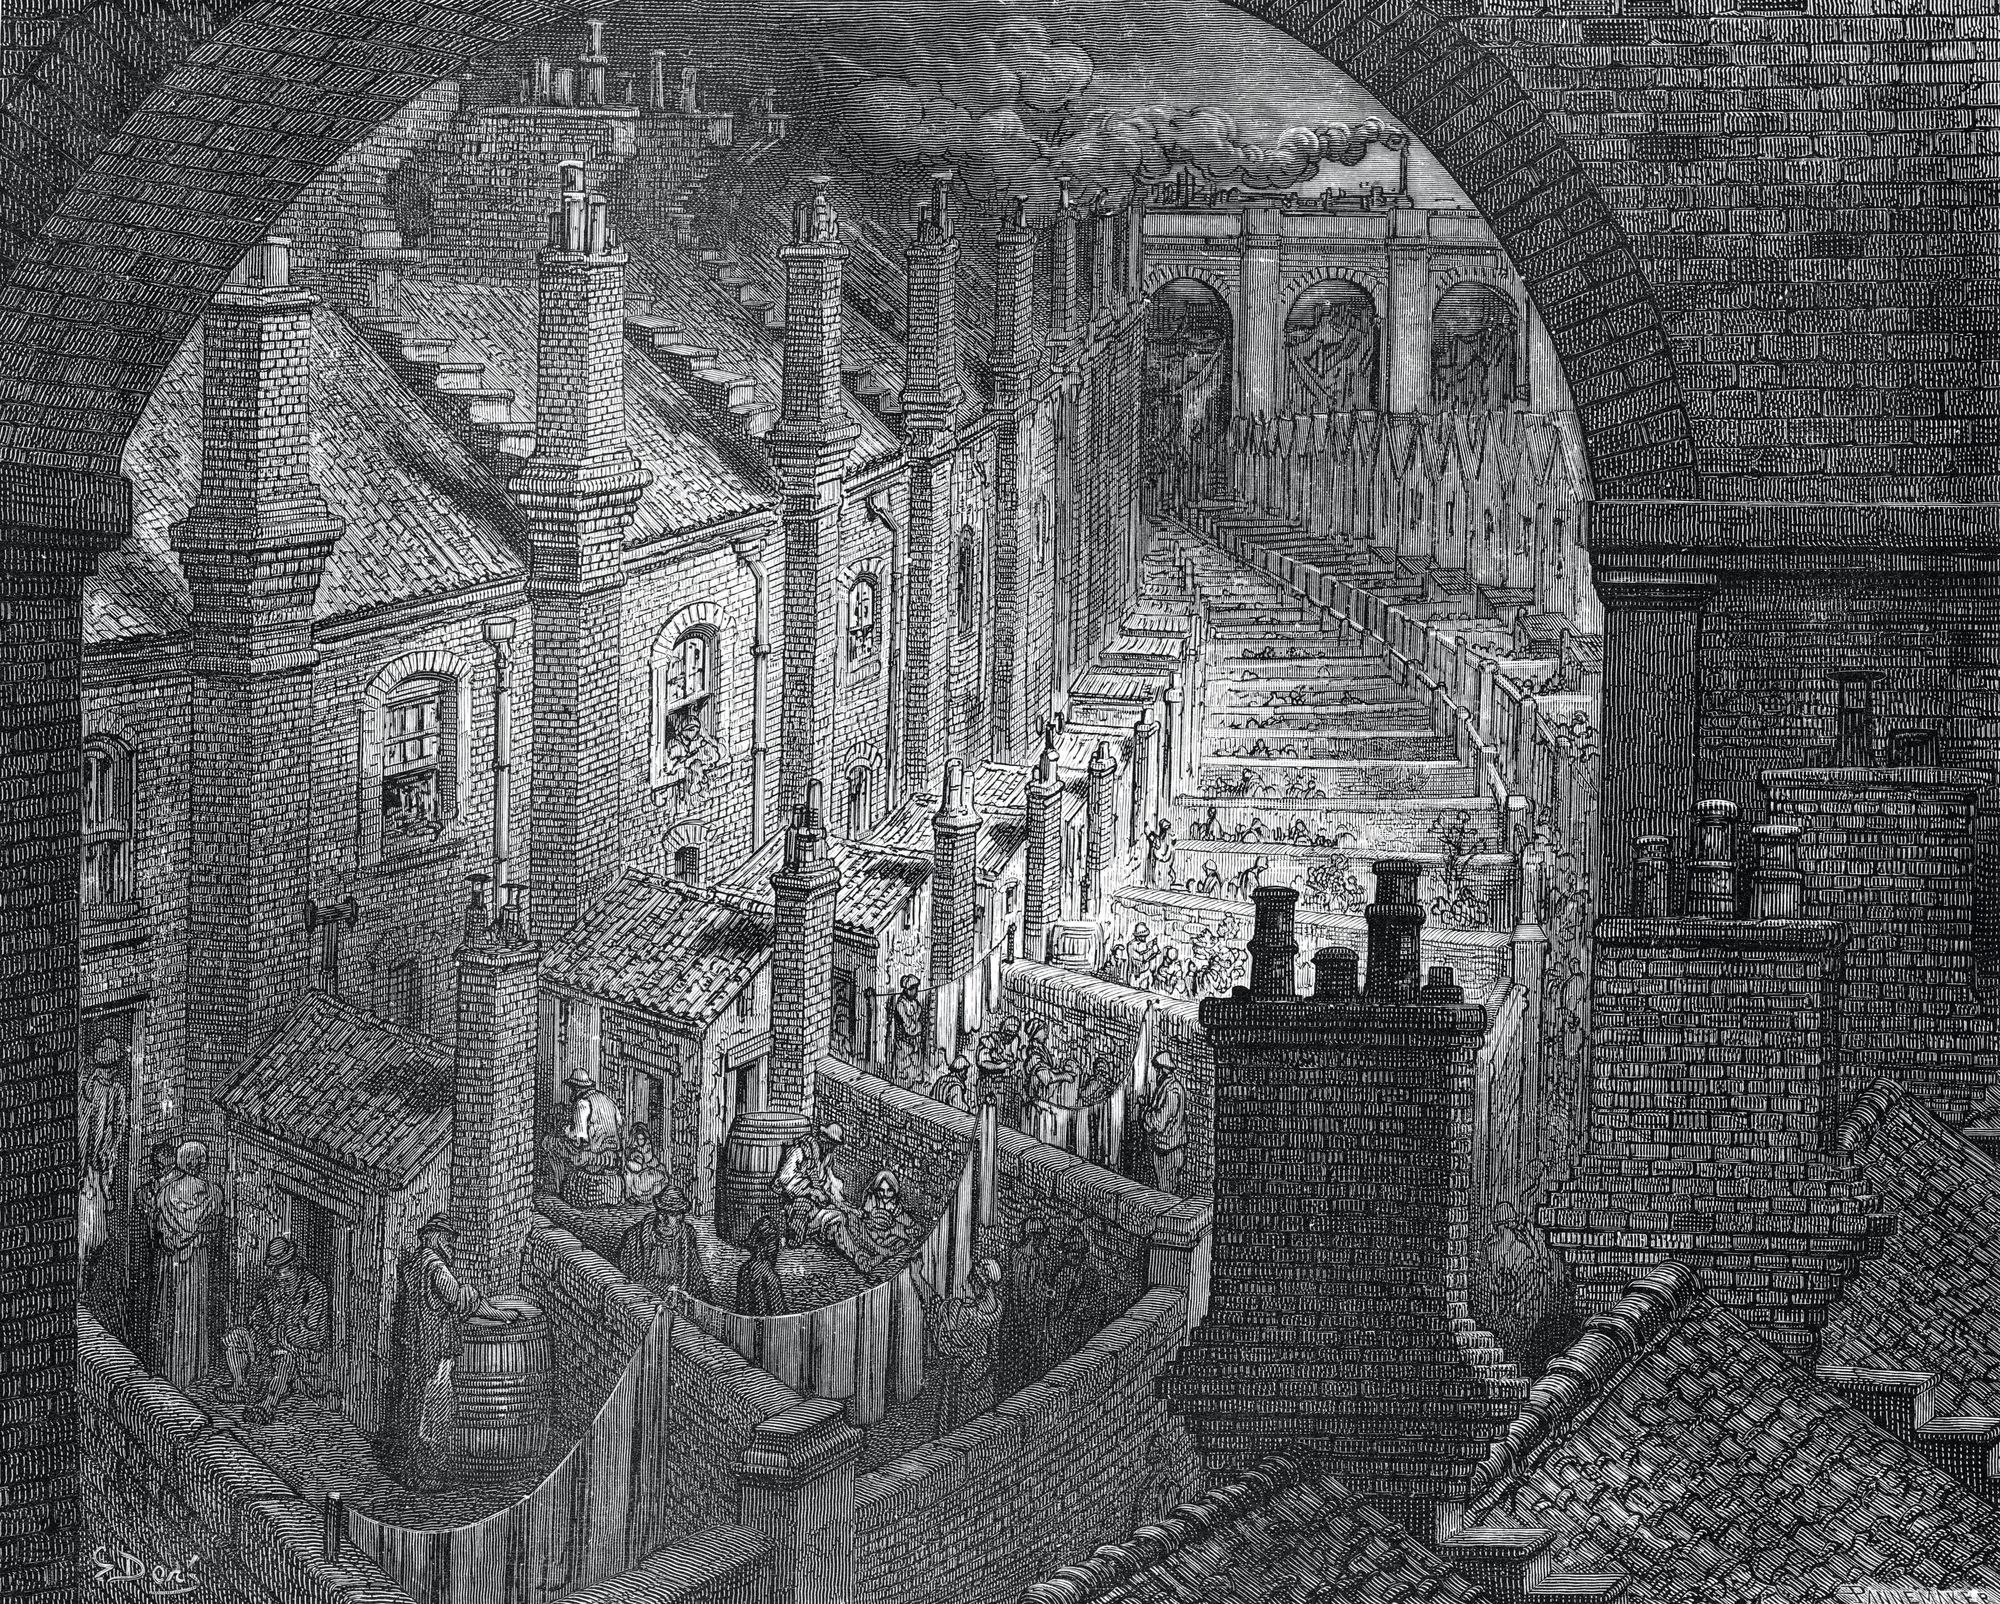 Over London by Rail, Gustave Doré, 1872.